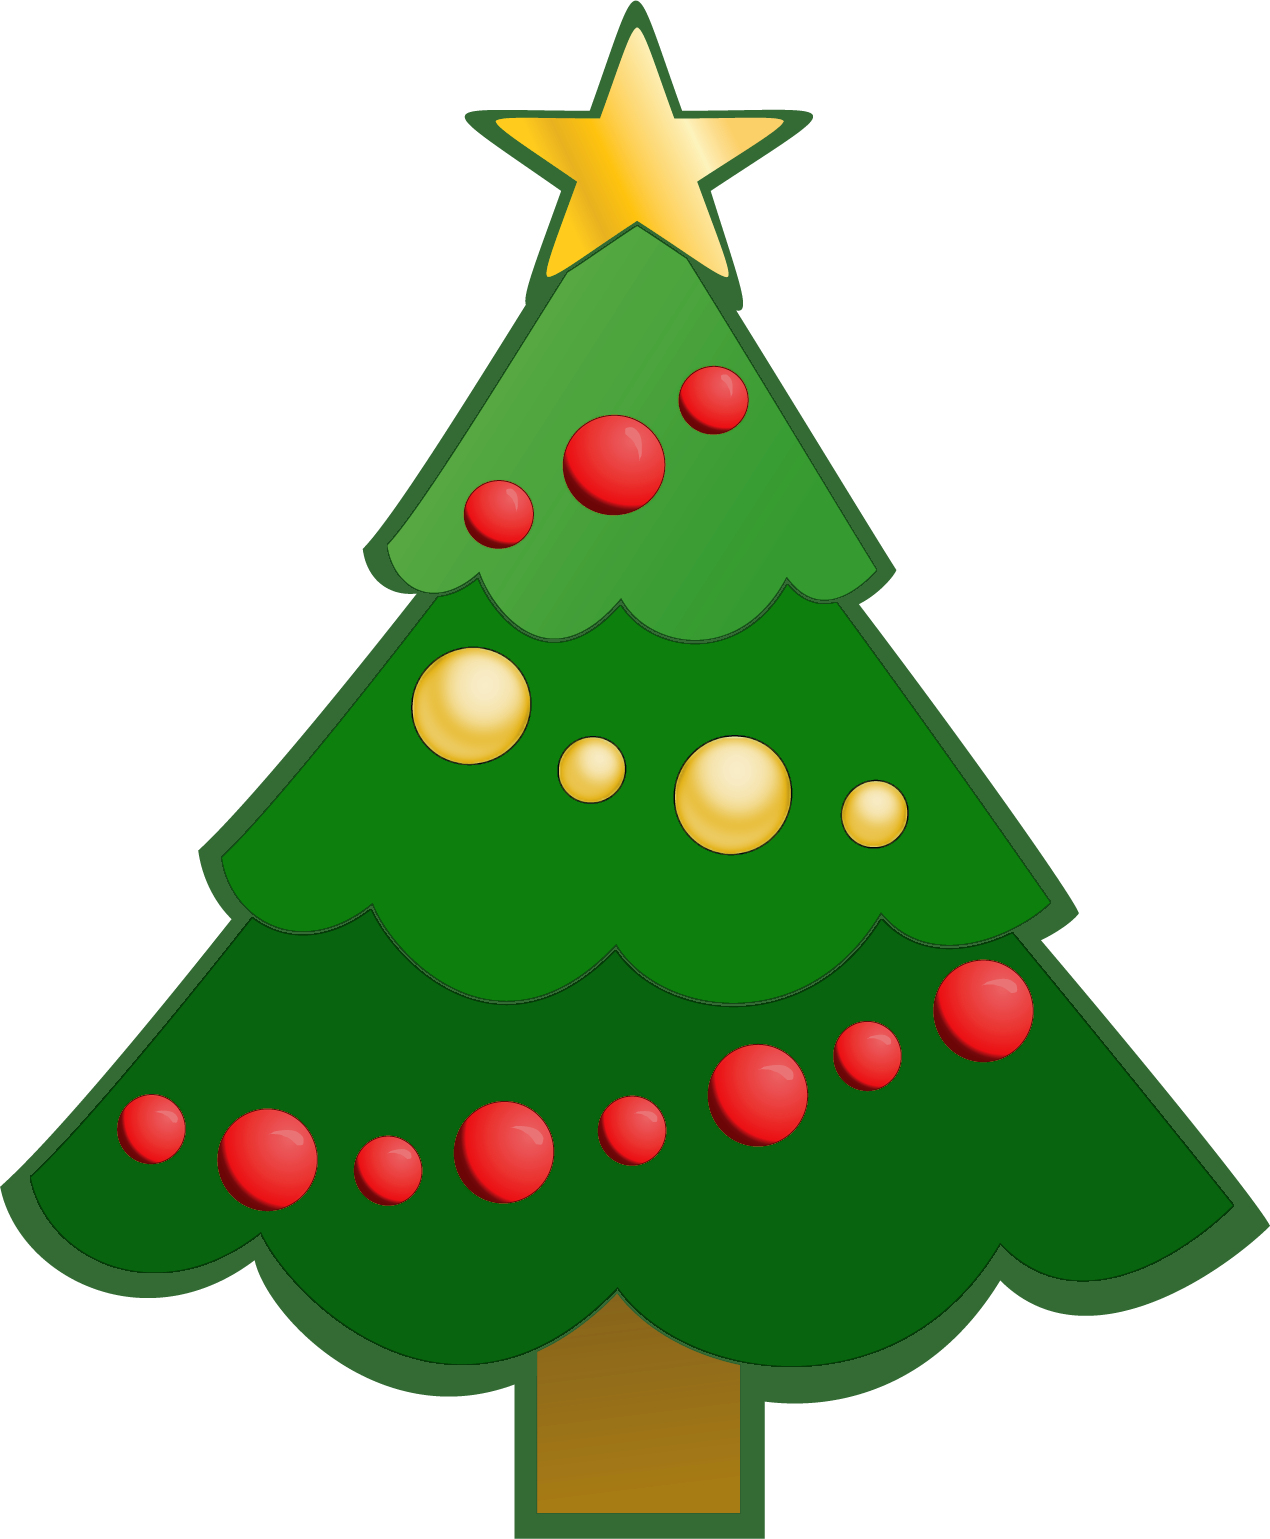 Cute tree clipart picture download Easy Christmas Clipart at GetDrawings.com | Free for personal use ... picture download